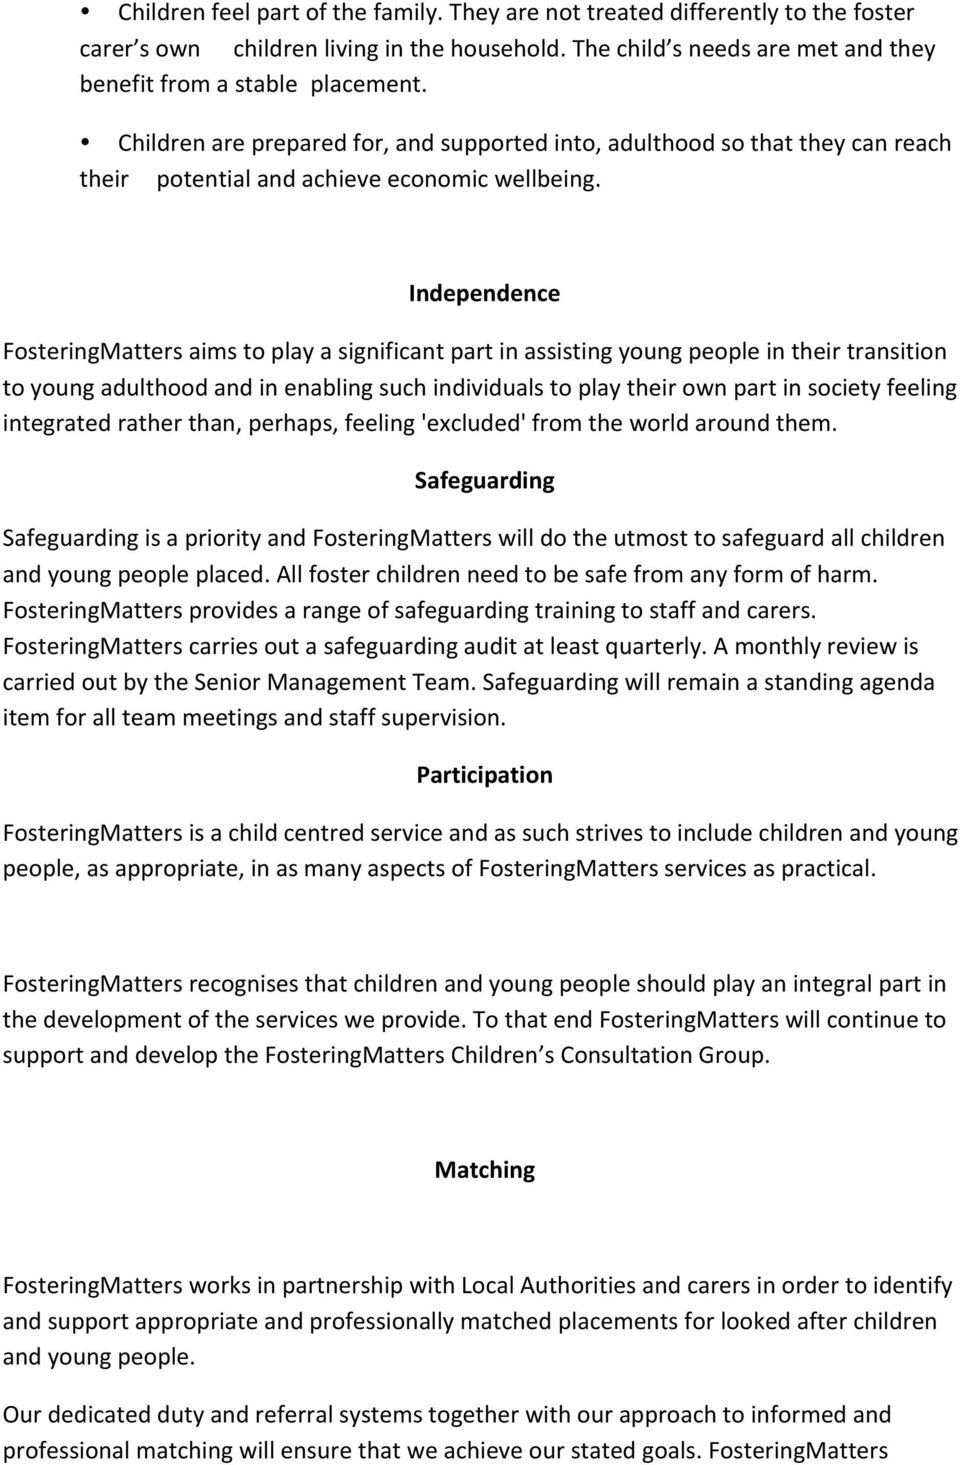 Independence FosteringMatters aims to play a significant part in assisting young people in their transition to young adulthood and in enabling such individuals to play their own part in society